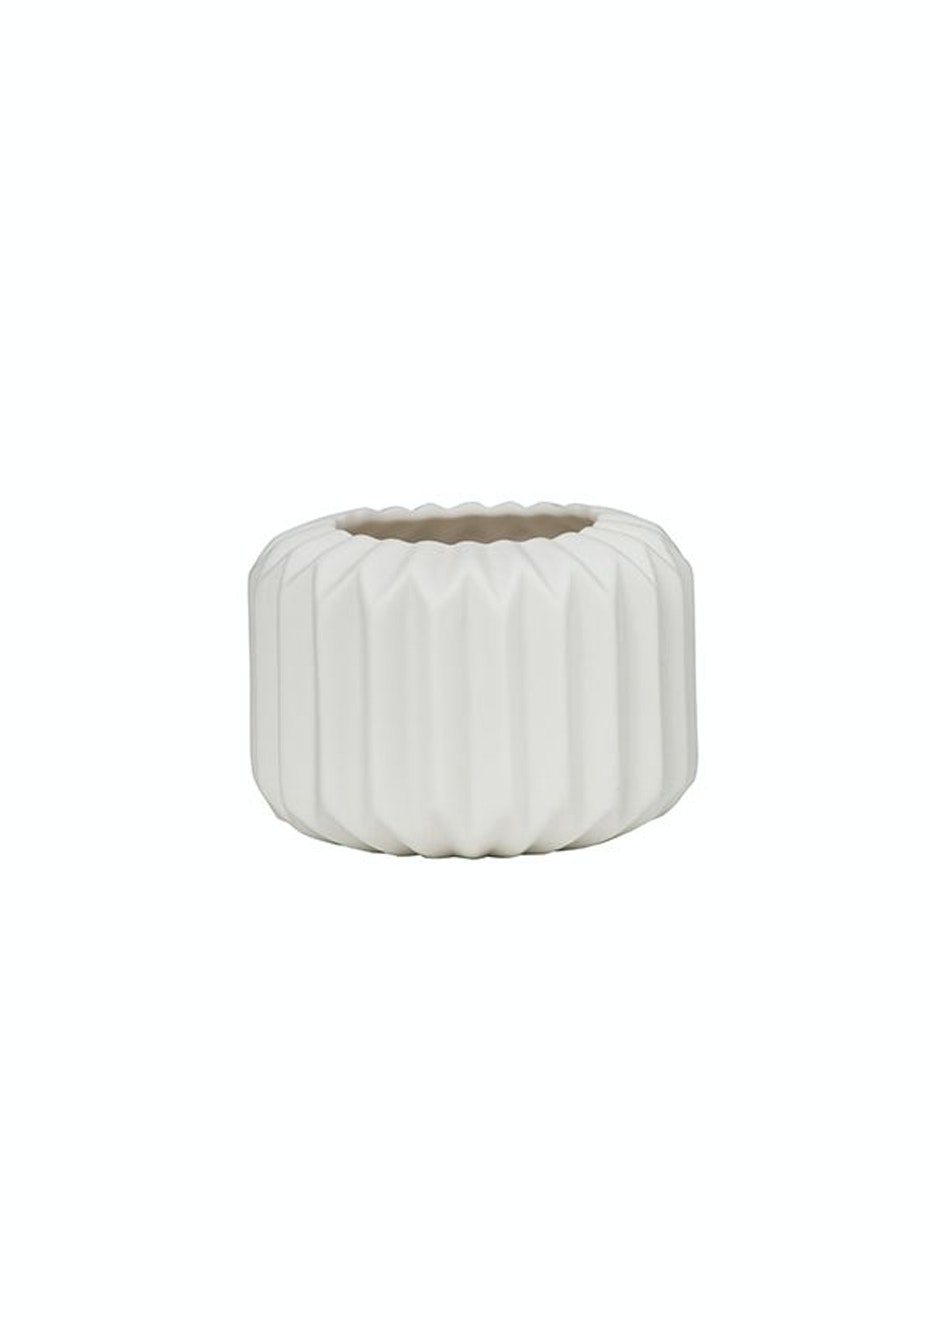 General Eclectic - Votive Porcelain Small White